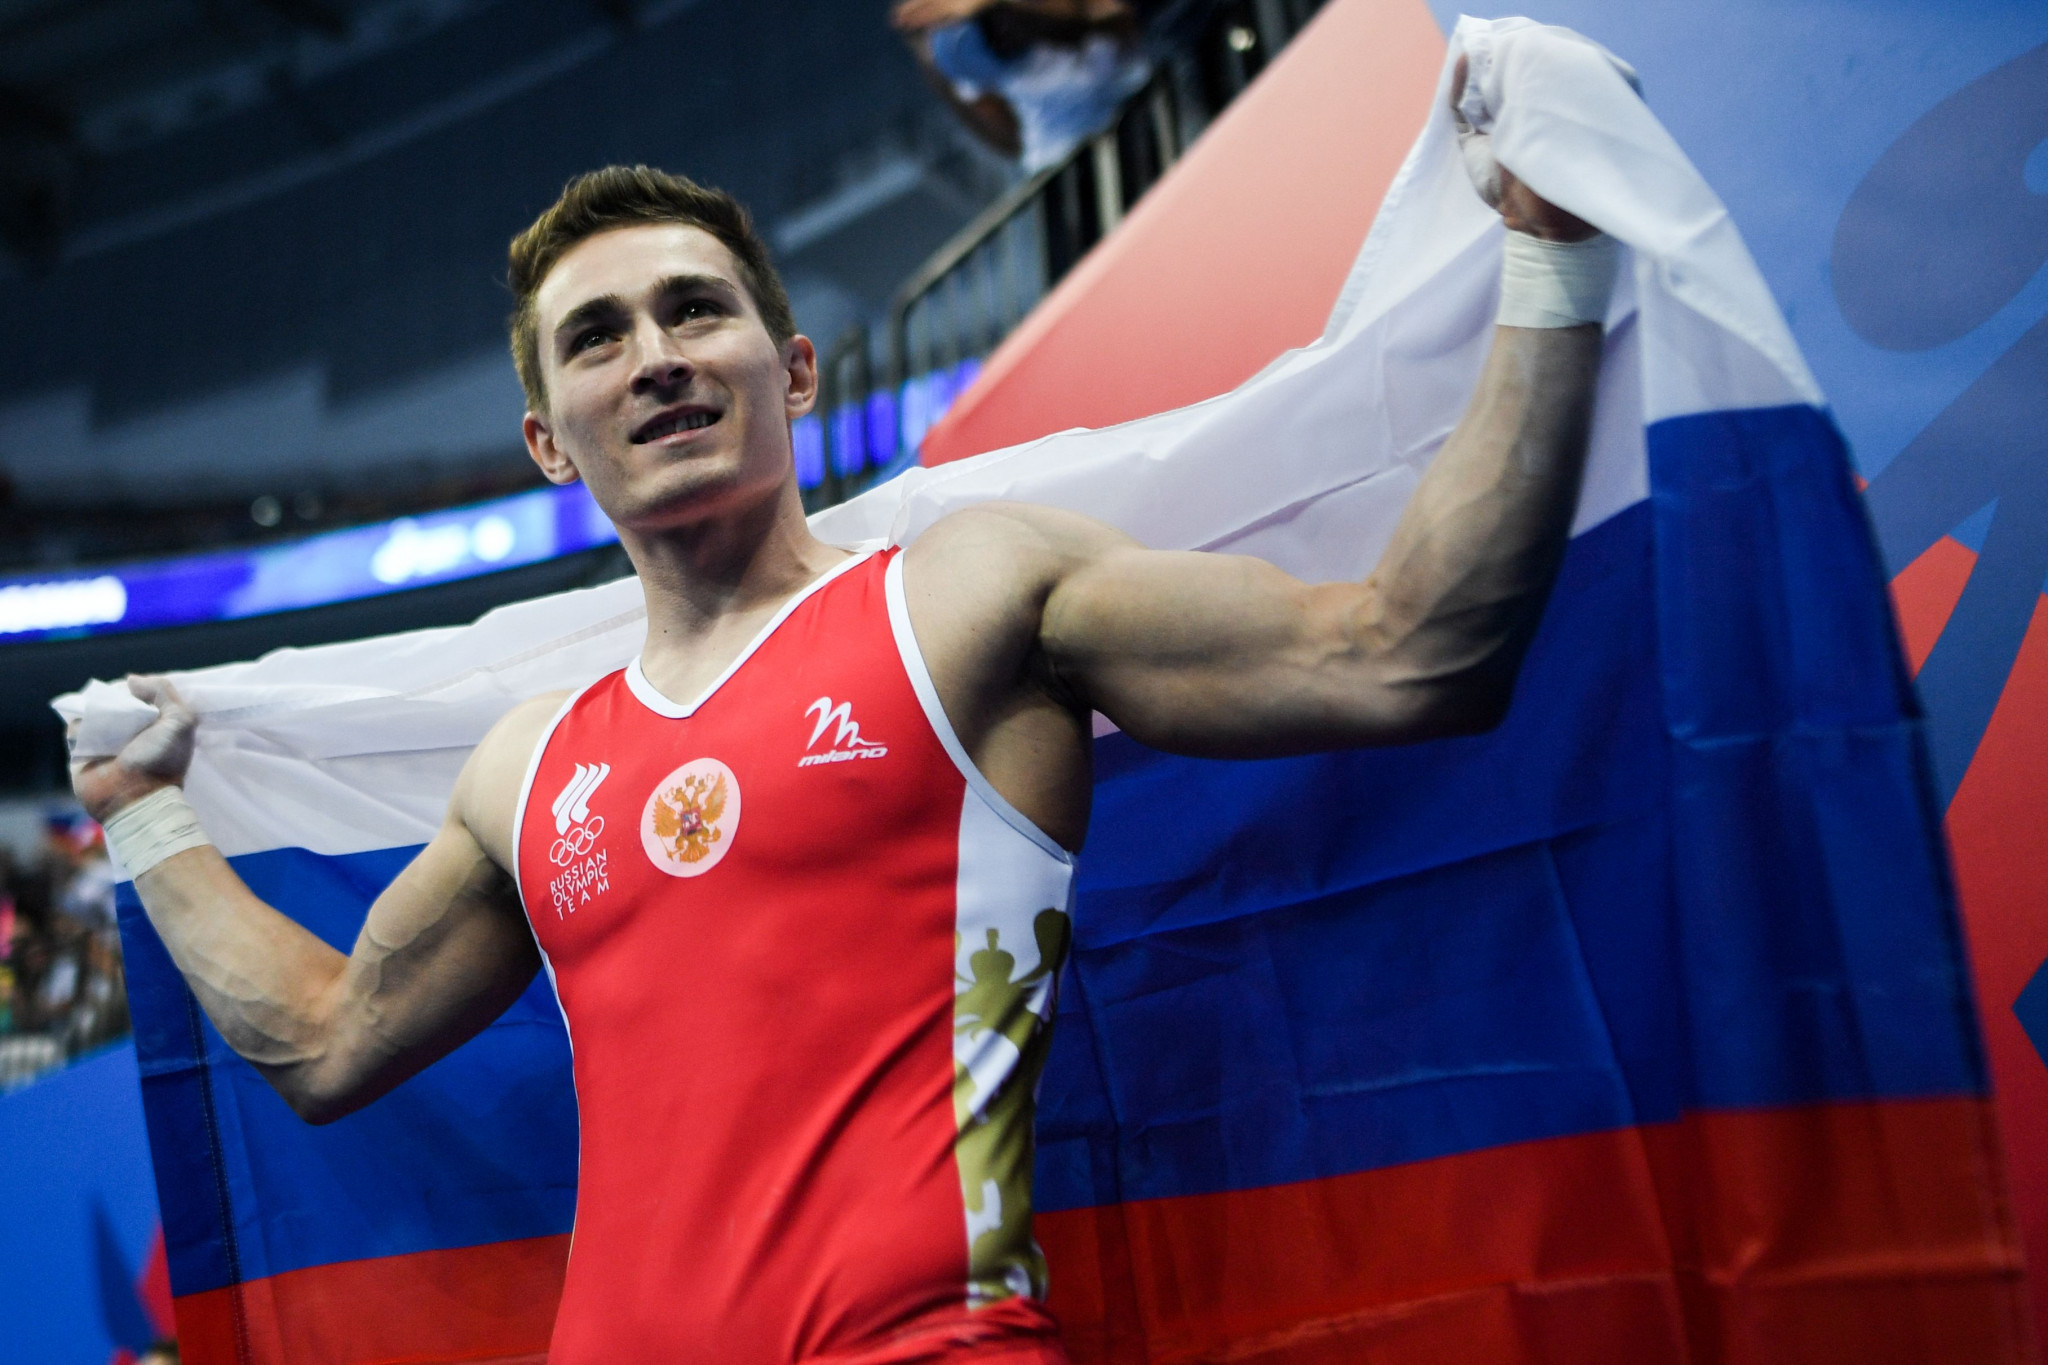 Belyavskiy chips in with second gymnastics gold as Russia finish distant leaders of Minsk 2019 medals table ahead of hosts